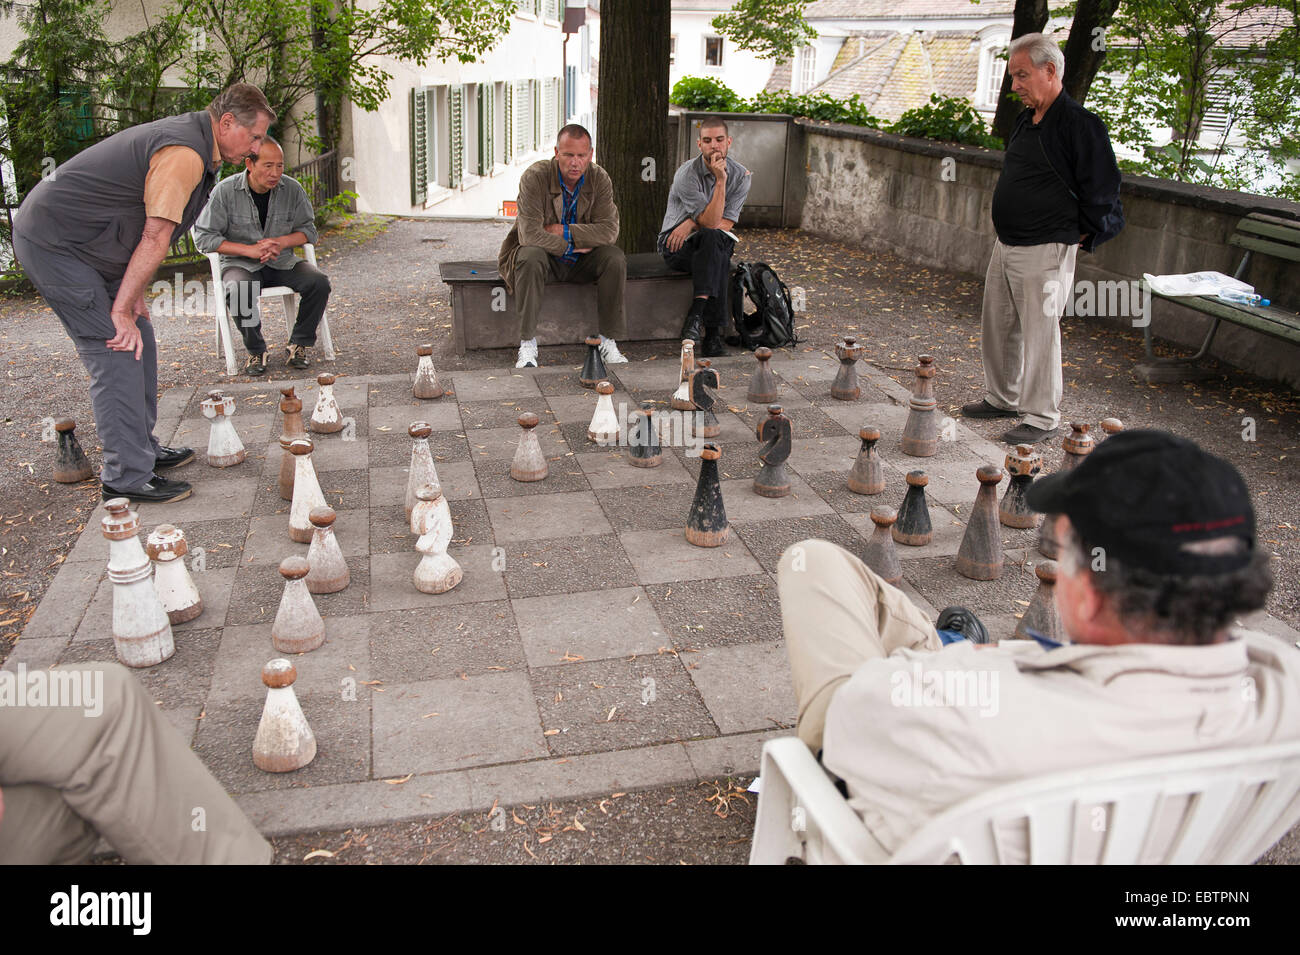 Men playing chess in Old town, Switzerland, Zurich - Stock Image